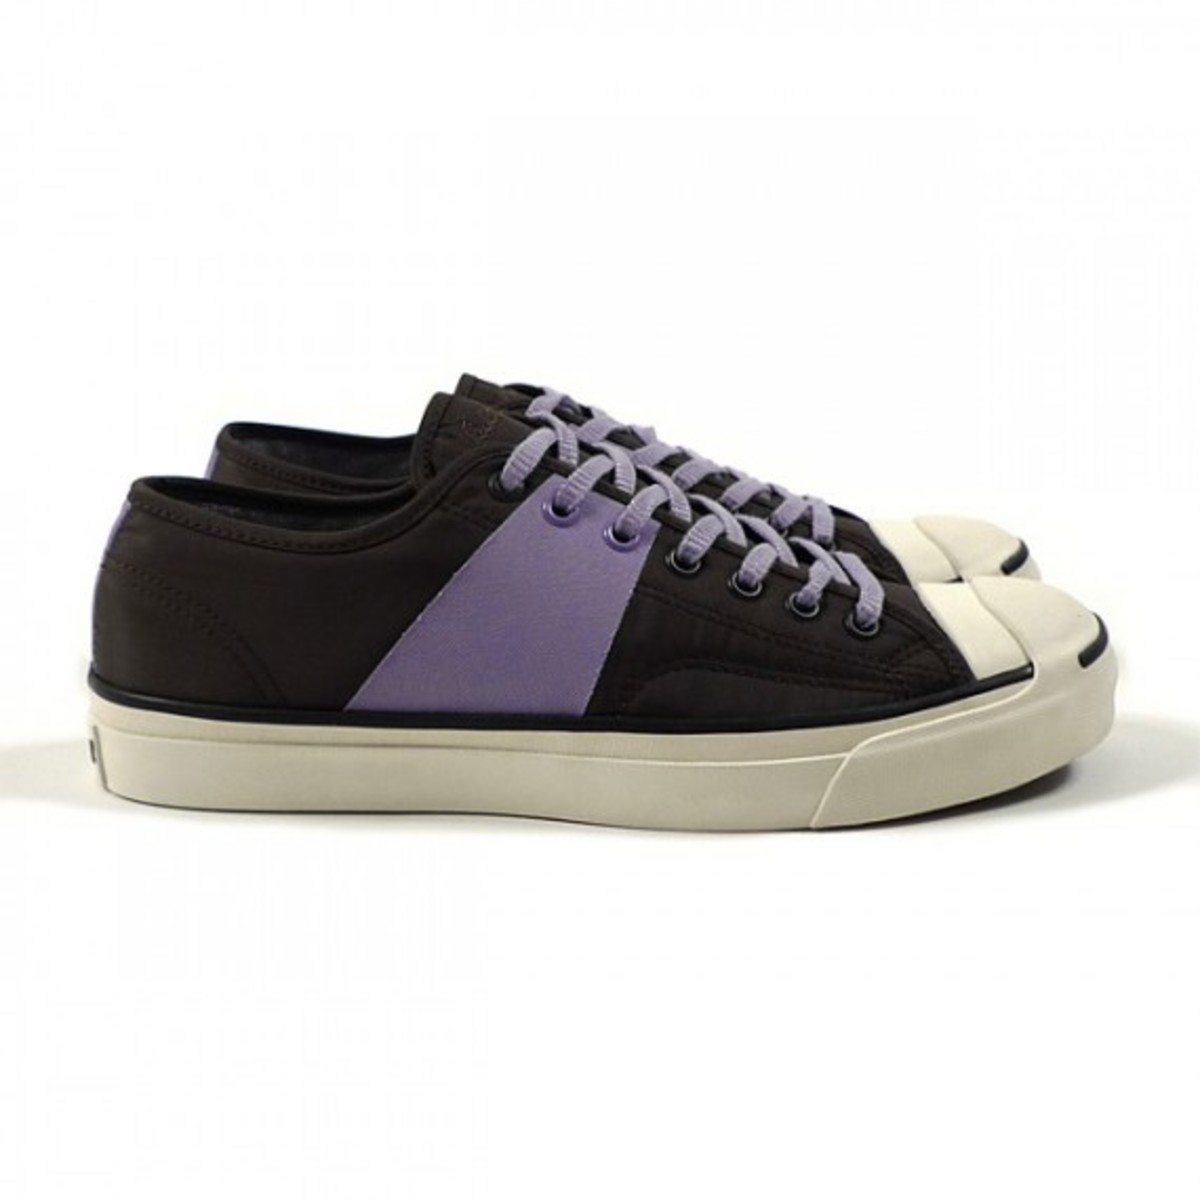 converse-first-string-jack-purcell-johnny-08